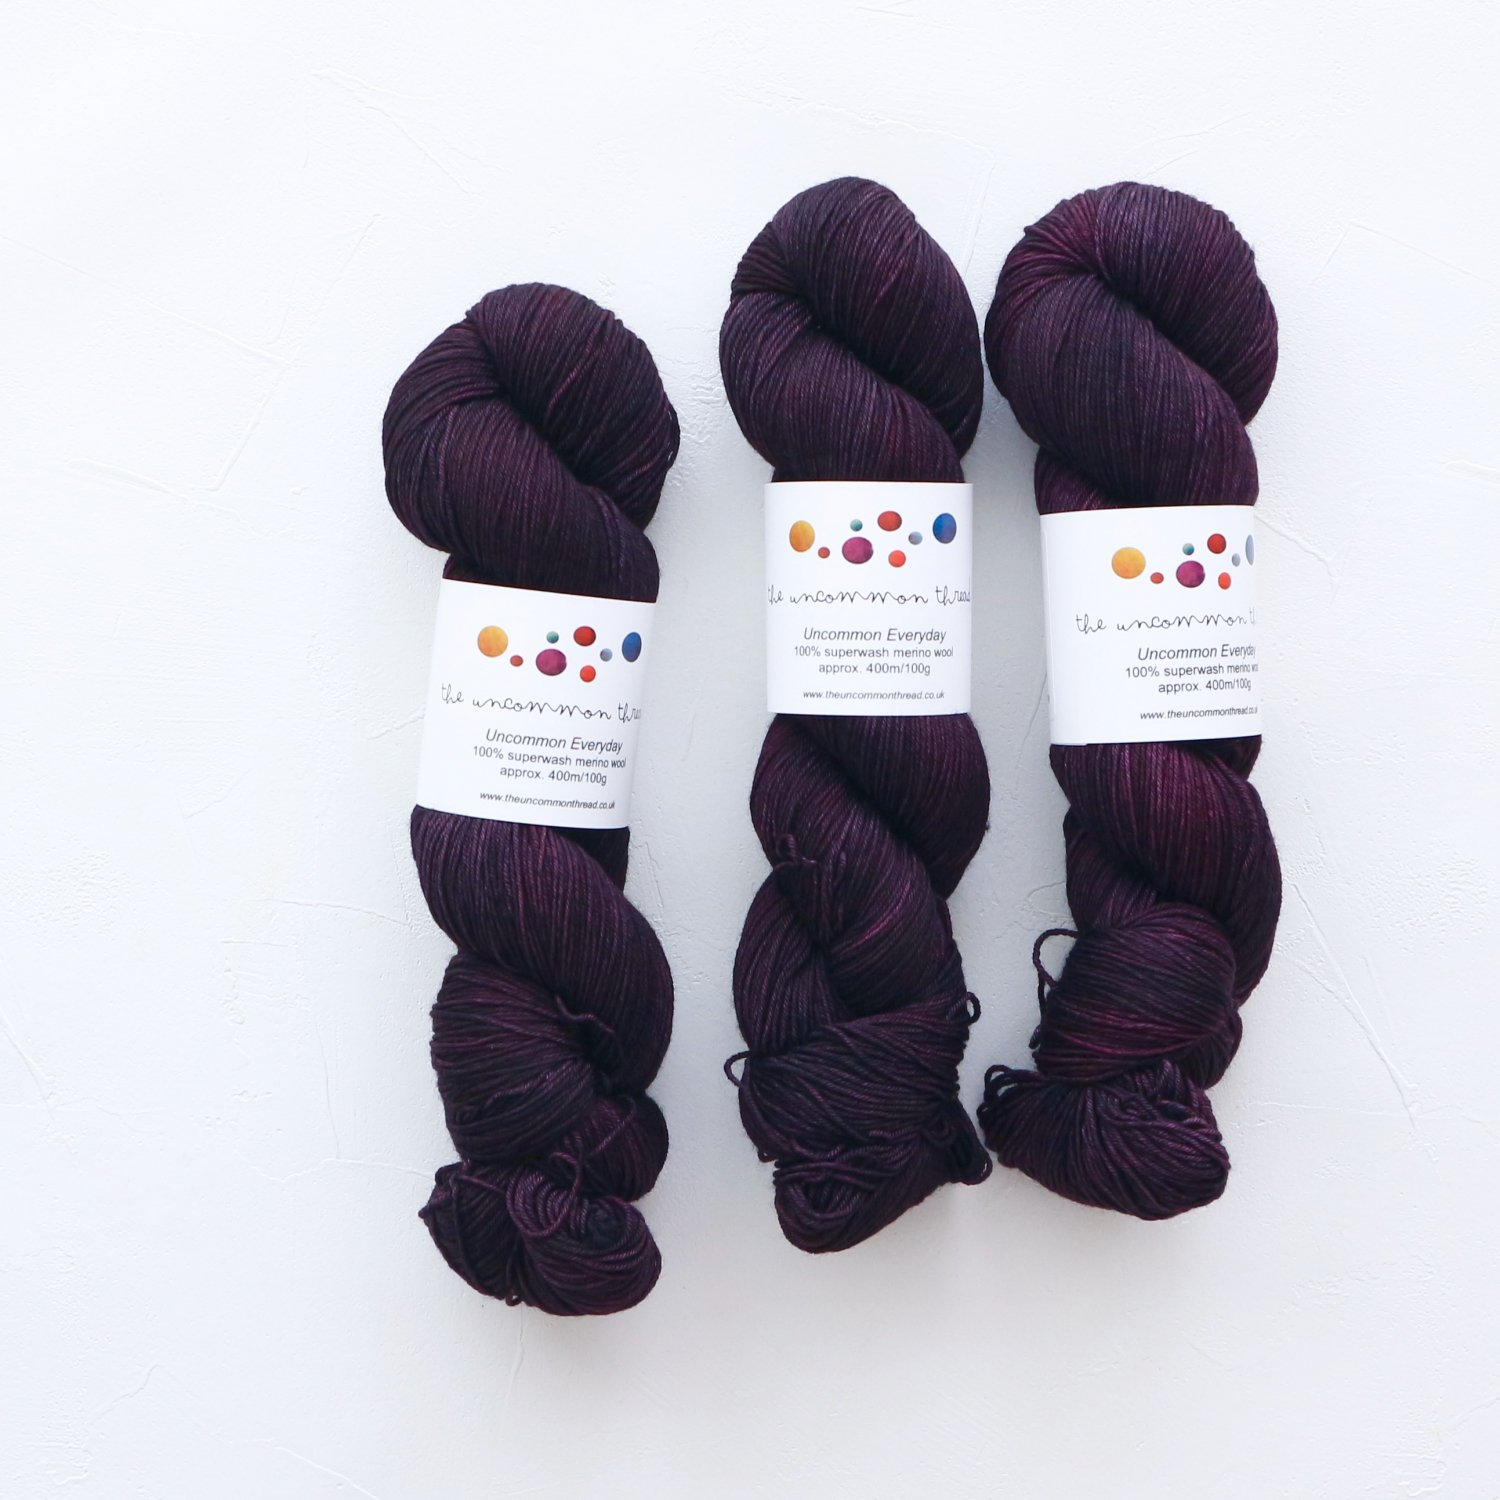 【The Uncommon Thread】<br>Uncommon Everyday<br>Aged Merlot